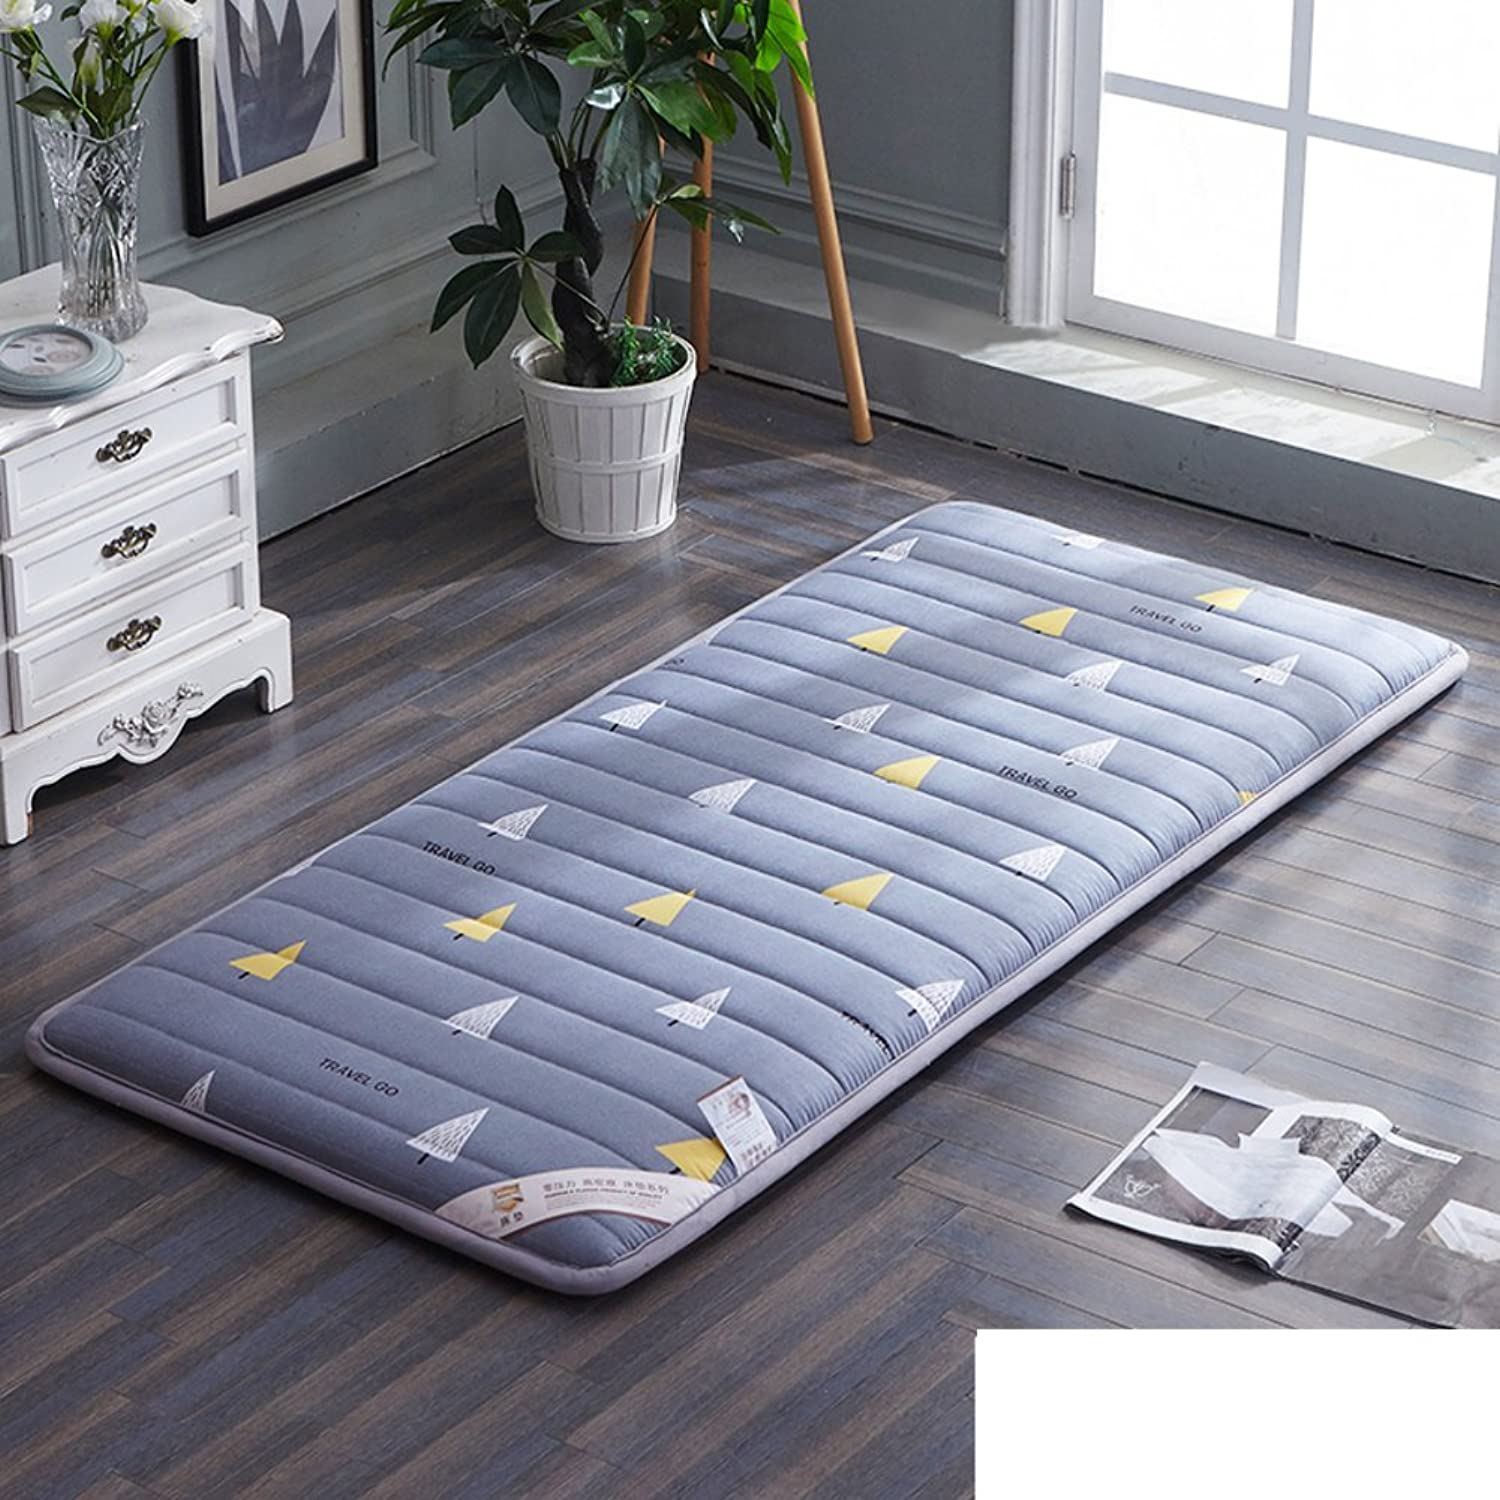 Plush Portable Folding Floor mat Thicken Tatami Mattress,Student [Dorm Room] Mattress Single Bed Floor [nap] [pad] [Cotton] Cushion Tatami mats Carpet-D 90x190cm(35x75inch)